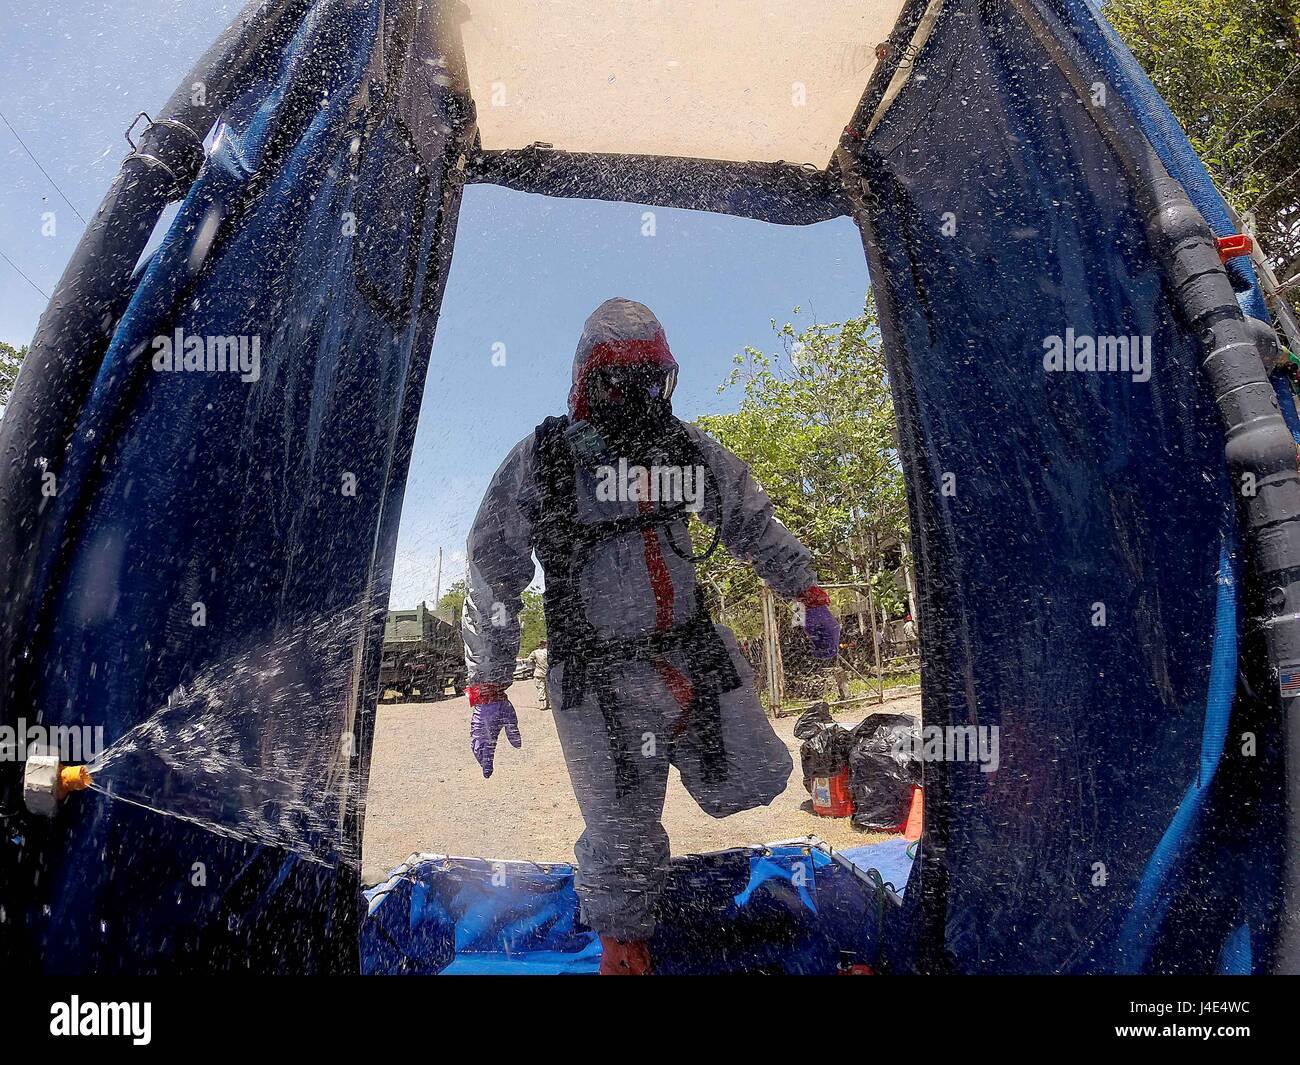 Nueva Ecija, Philippines. 12th May, 2017. A soldier from the Armed Forces of the Philippines wearing a hazmat suit - Stock Image